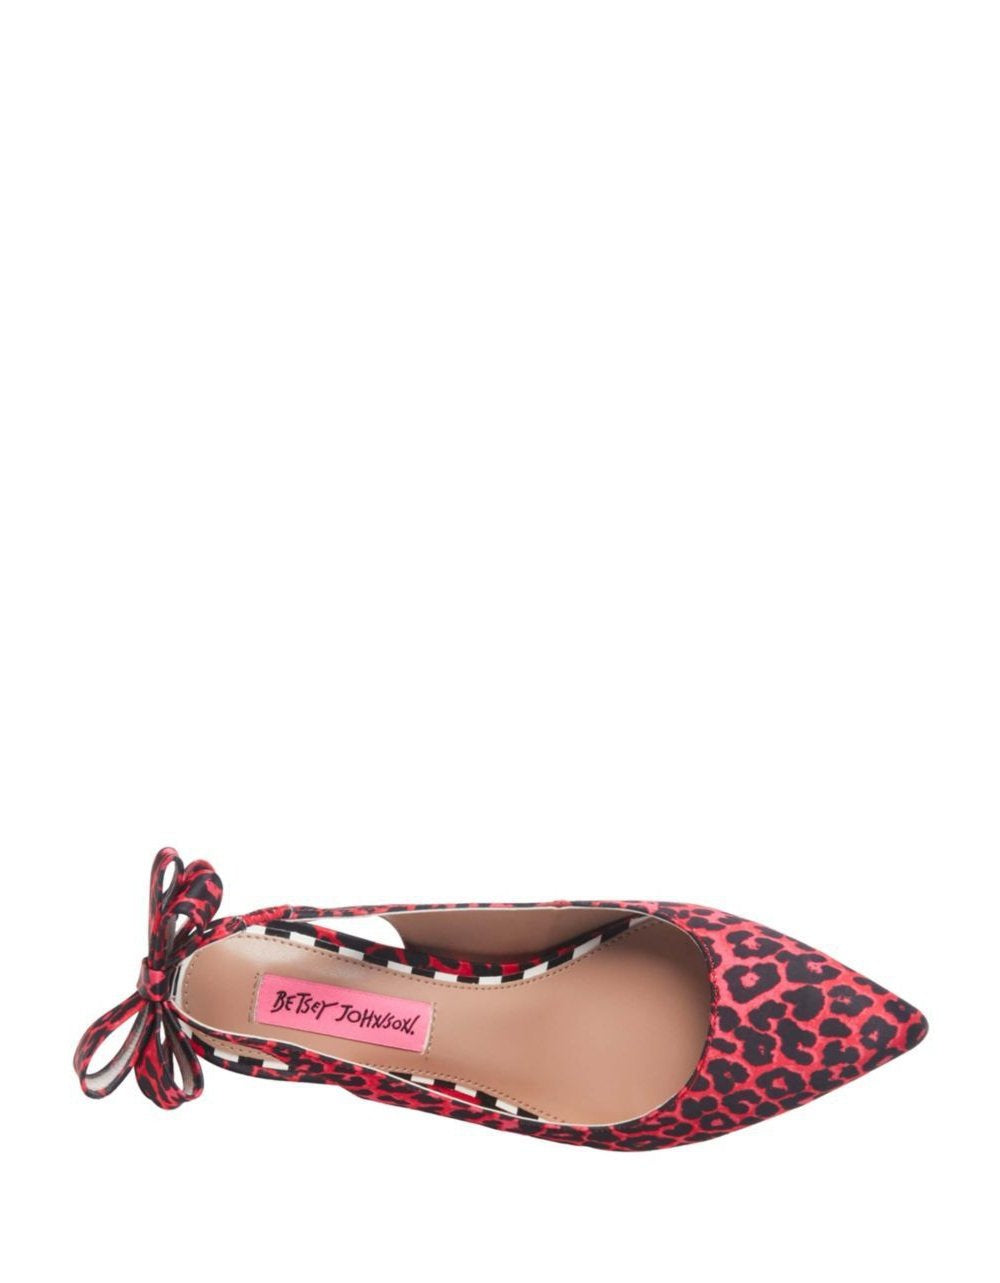 db9ce48b4b3 ... GINJER BLACK-RED LEATHER - SHOES - Betsey Johnson